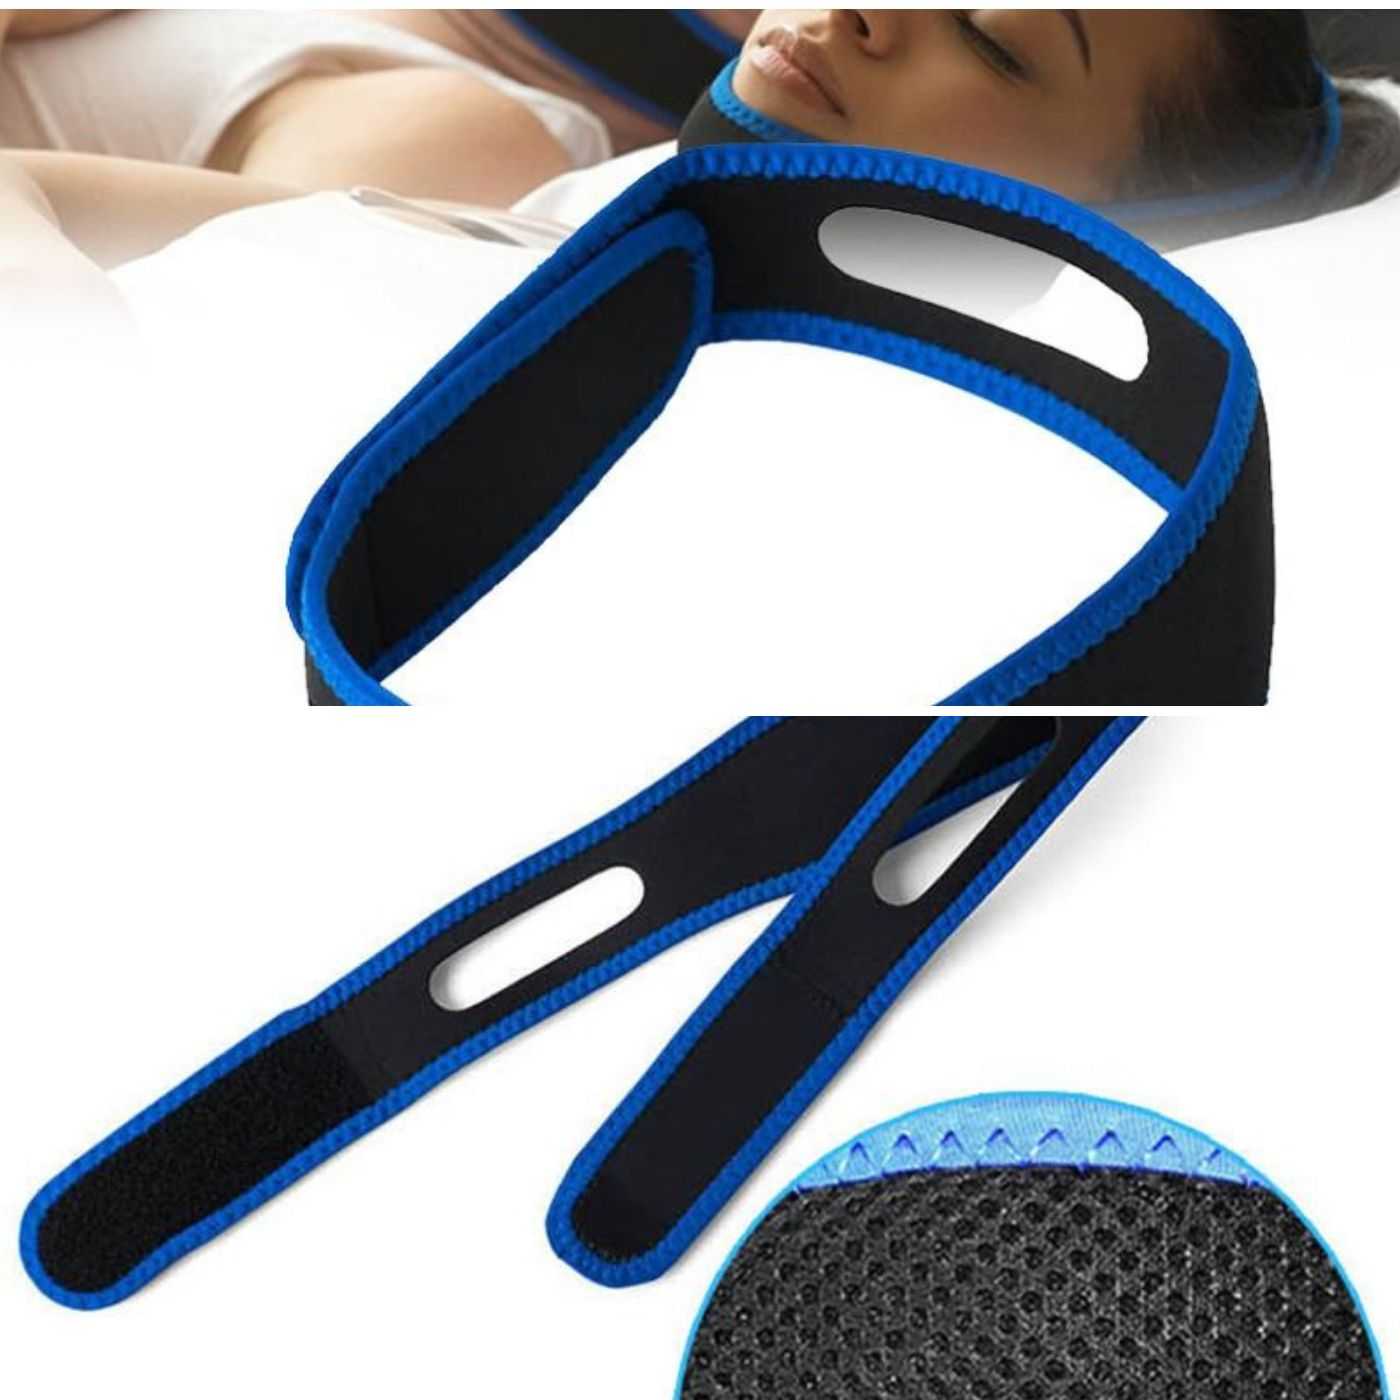 Anti Snoring Chin Strap For Stopping Bruxism, Nose Snoring